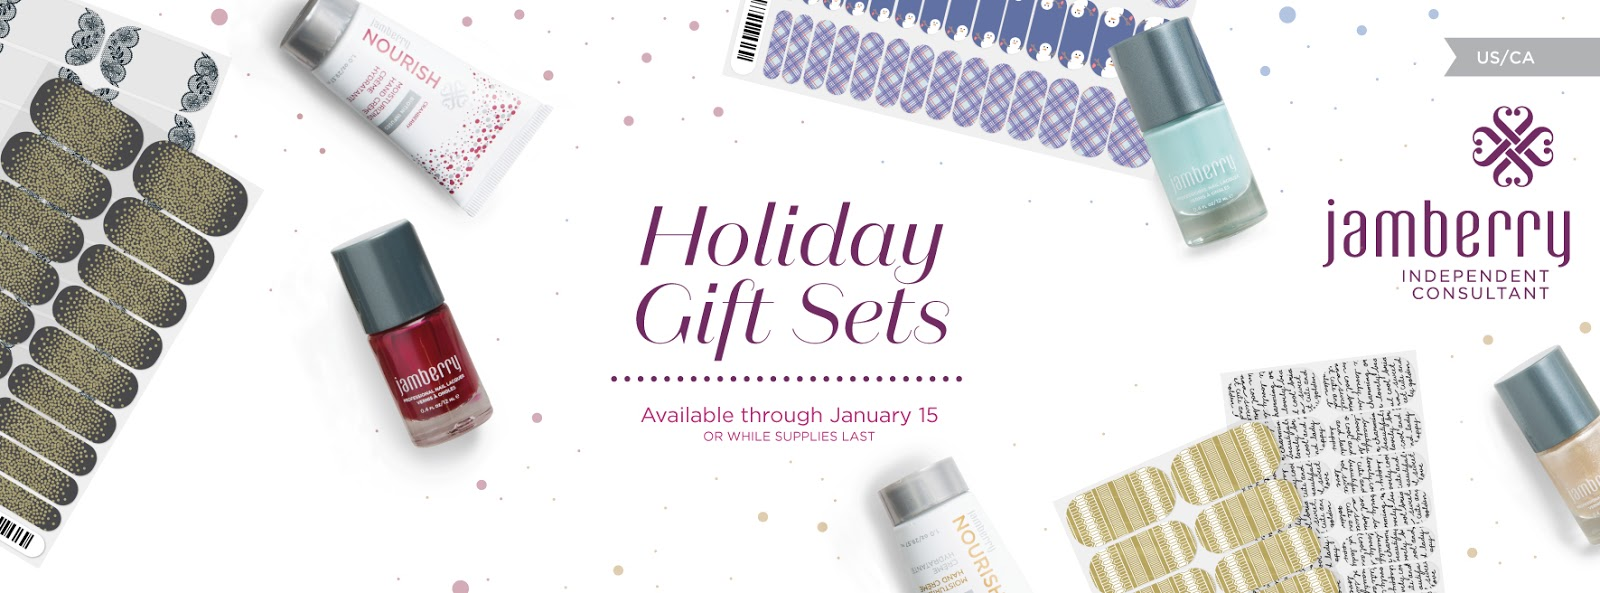 Jamberry Holiday Gift Sets: Winter Wishes, All is Bright, and Snow ...